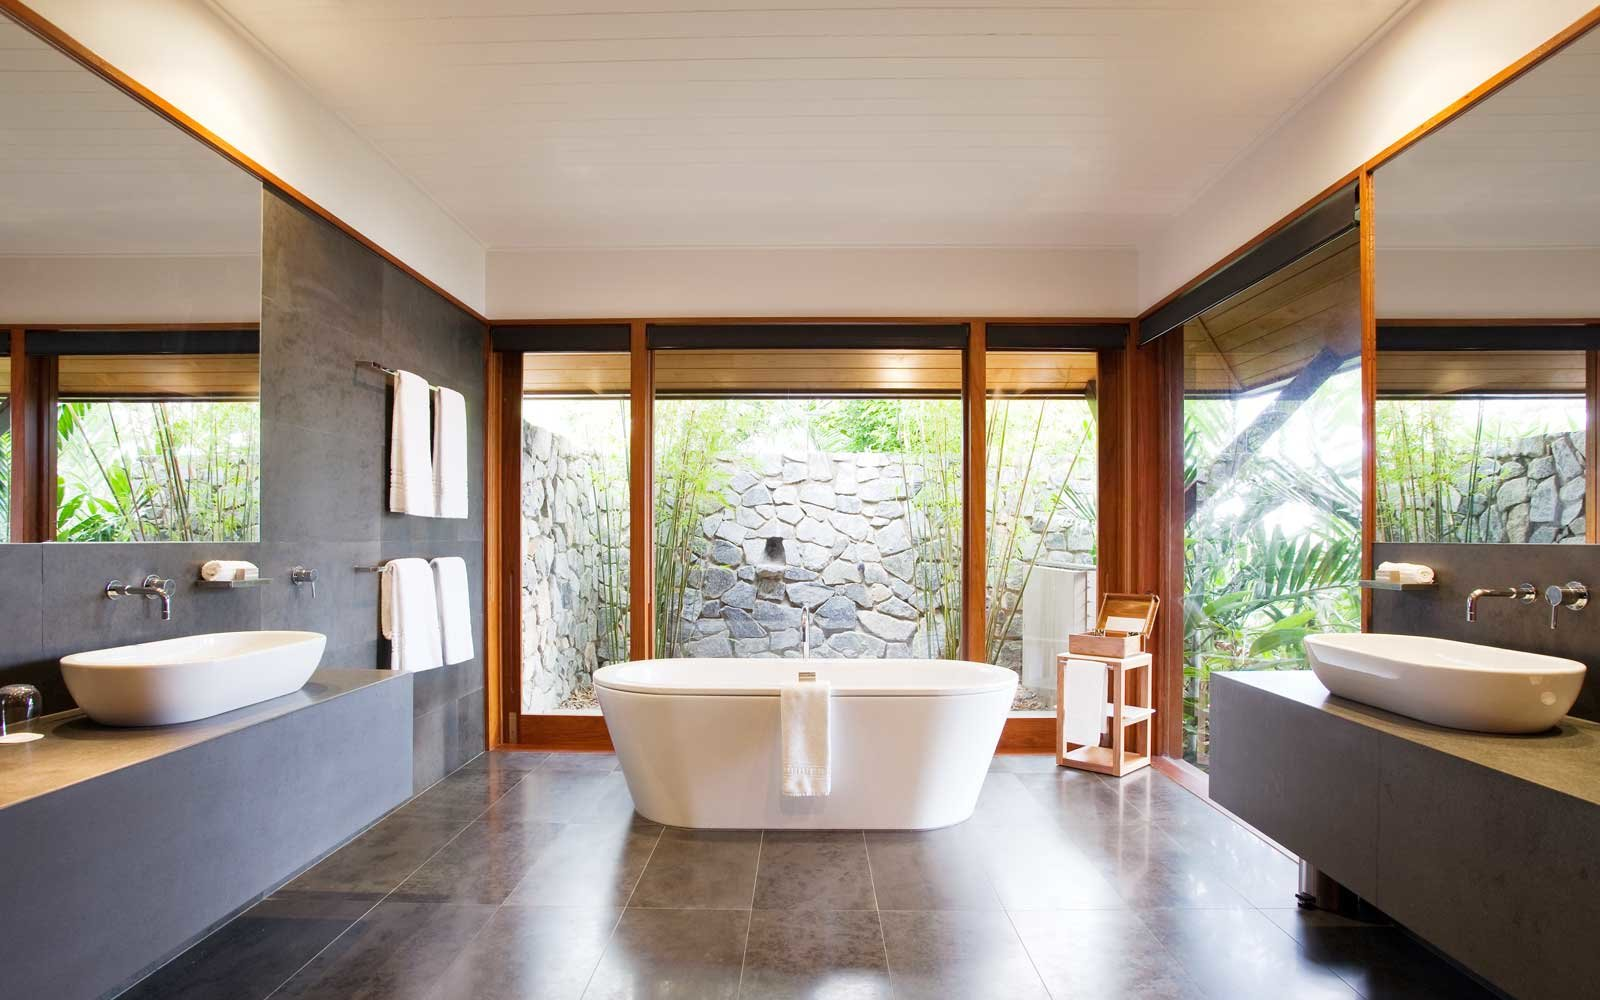 Luxury bathroom at the Qualia resort on Hamilton Island